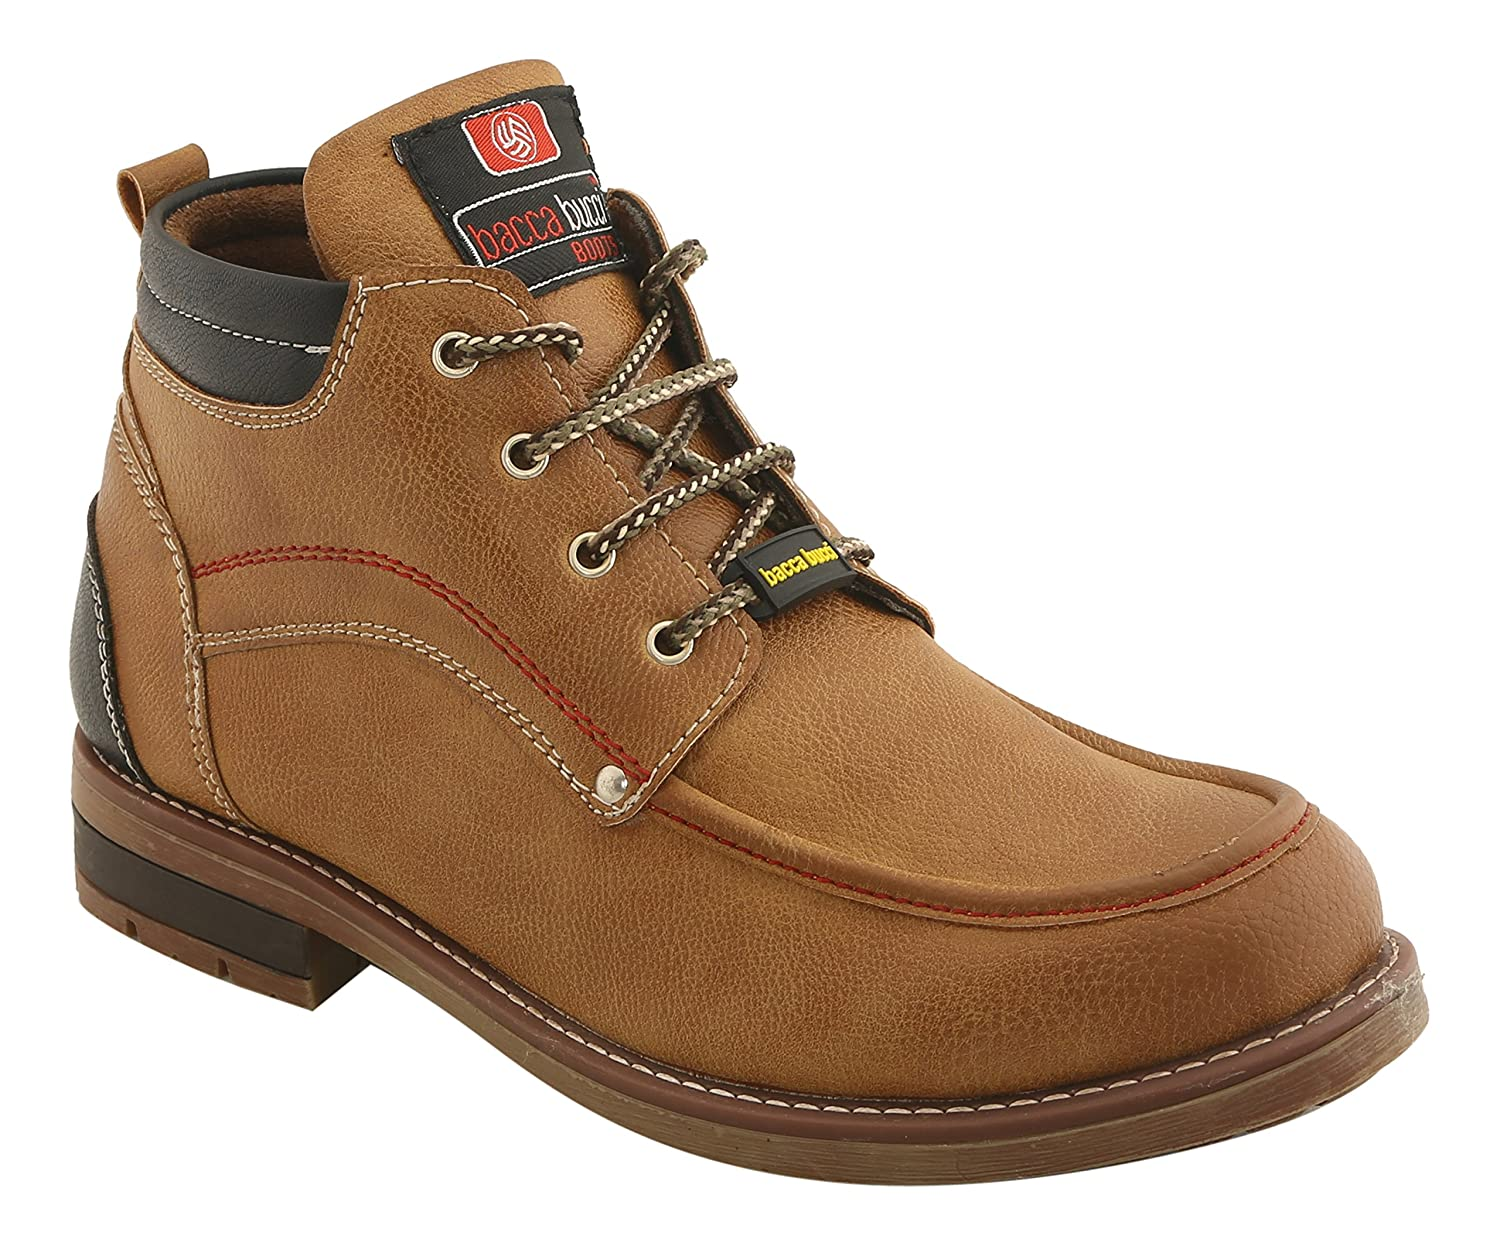 b37dd9b7e44d Bacca Bucci Men s Boots  Buy Online at Low Prices in India - Amazon.in